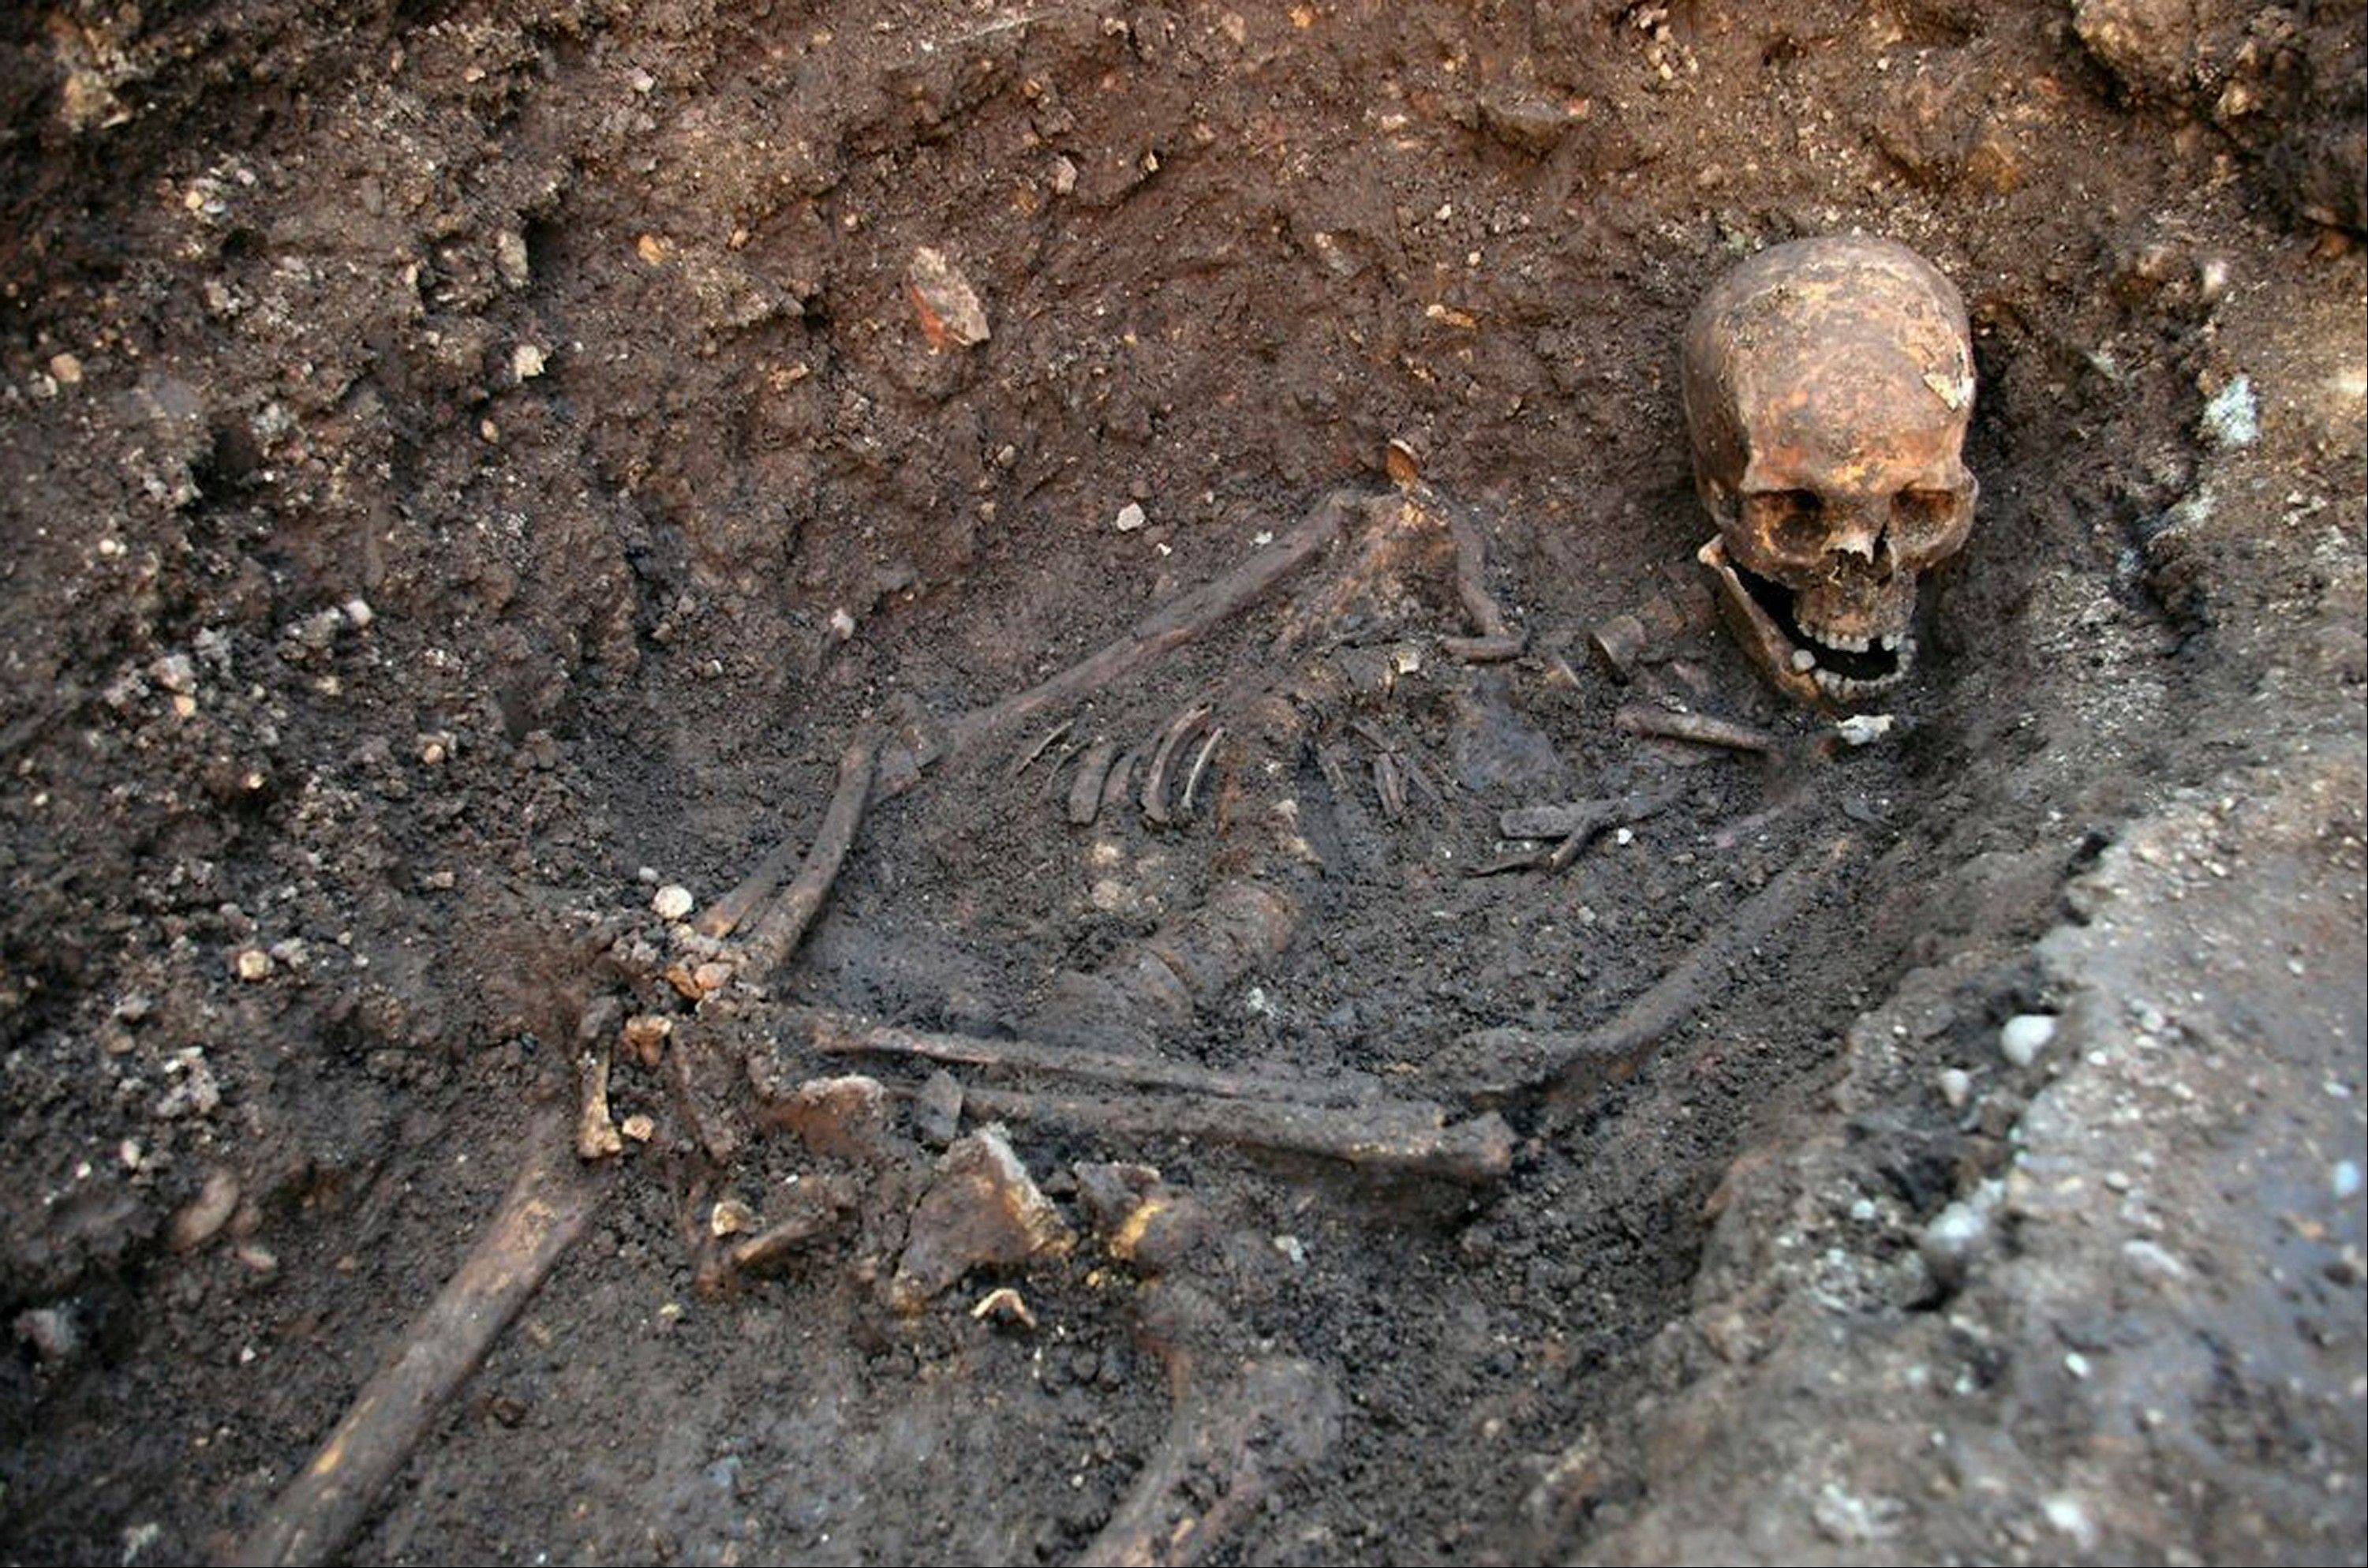 A British High Court judge granted a group of Richard's relatives the right to challenge plans to rebury the 15th-century monarch in the city of Leicester. The relatives want him buried in the northern England city of York, claiming it was the king's wish. Richard was killed in battle in 1485. His skeleton was found last year under a Leicester parking lot.